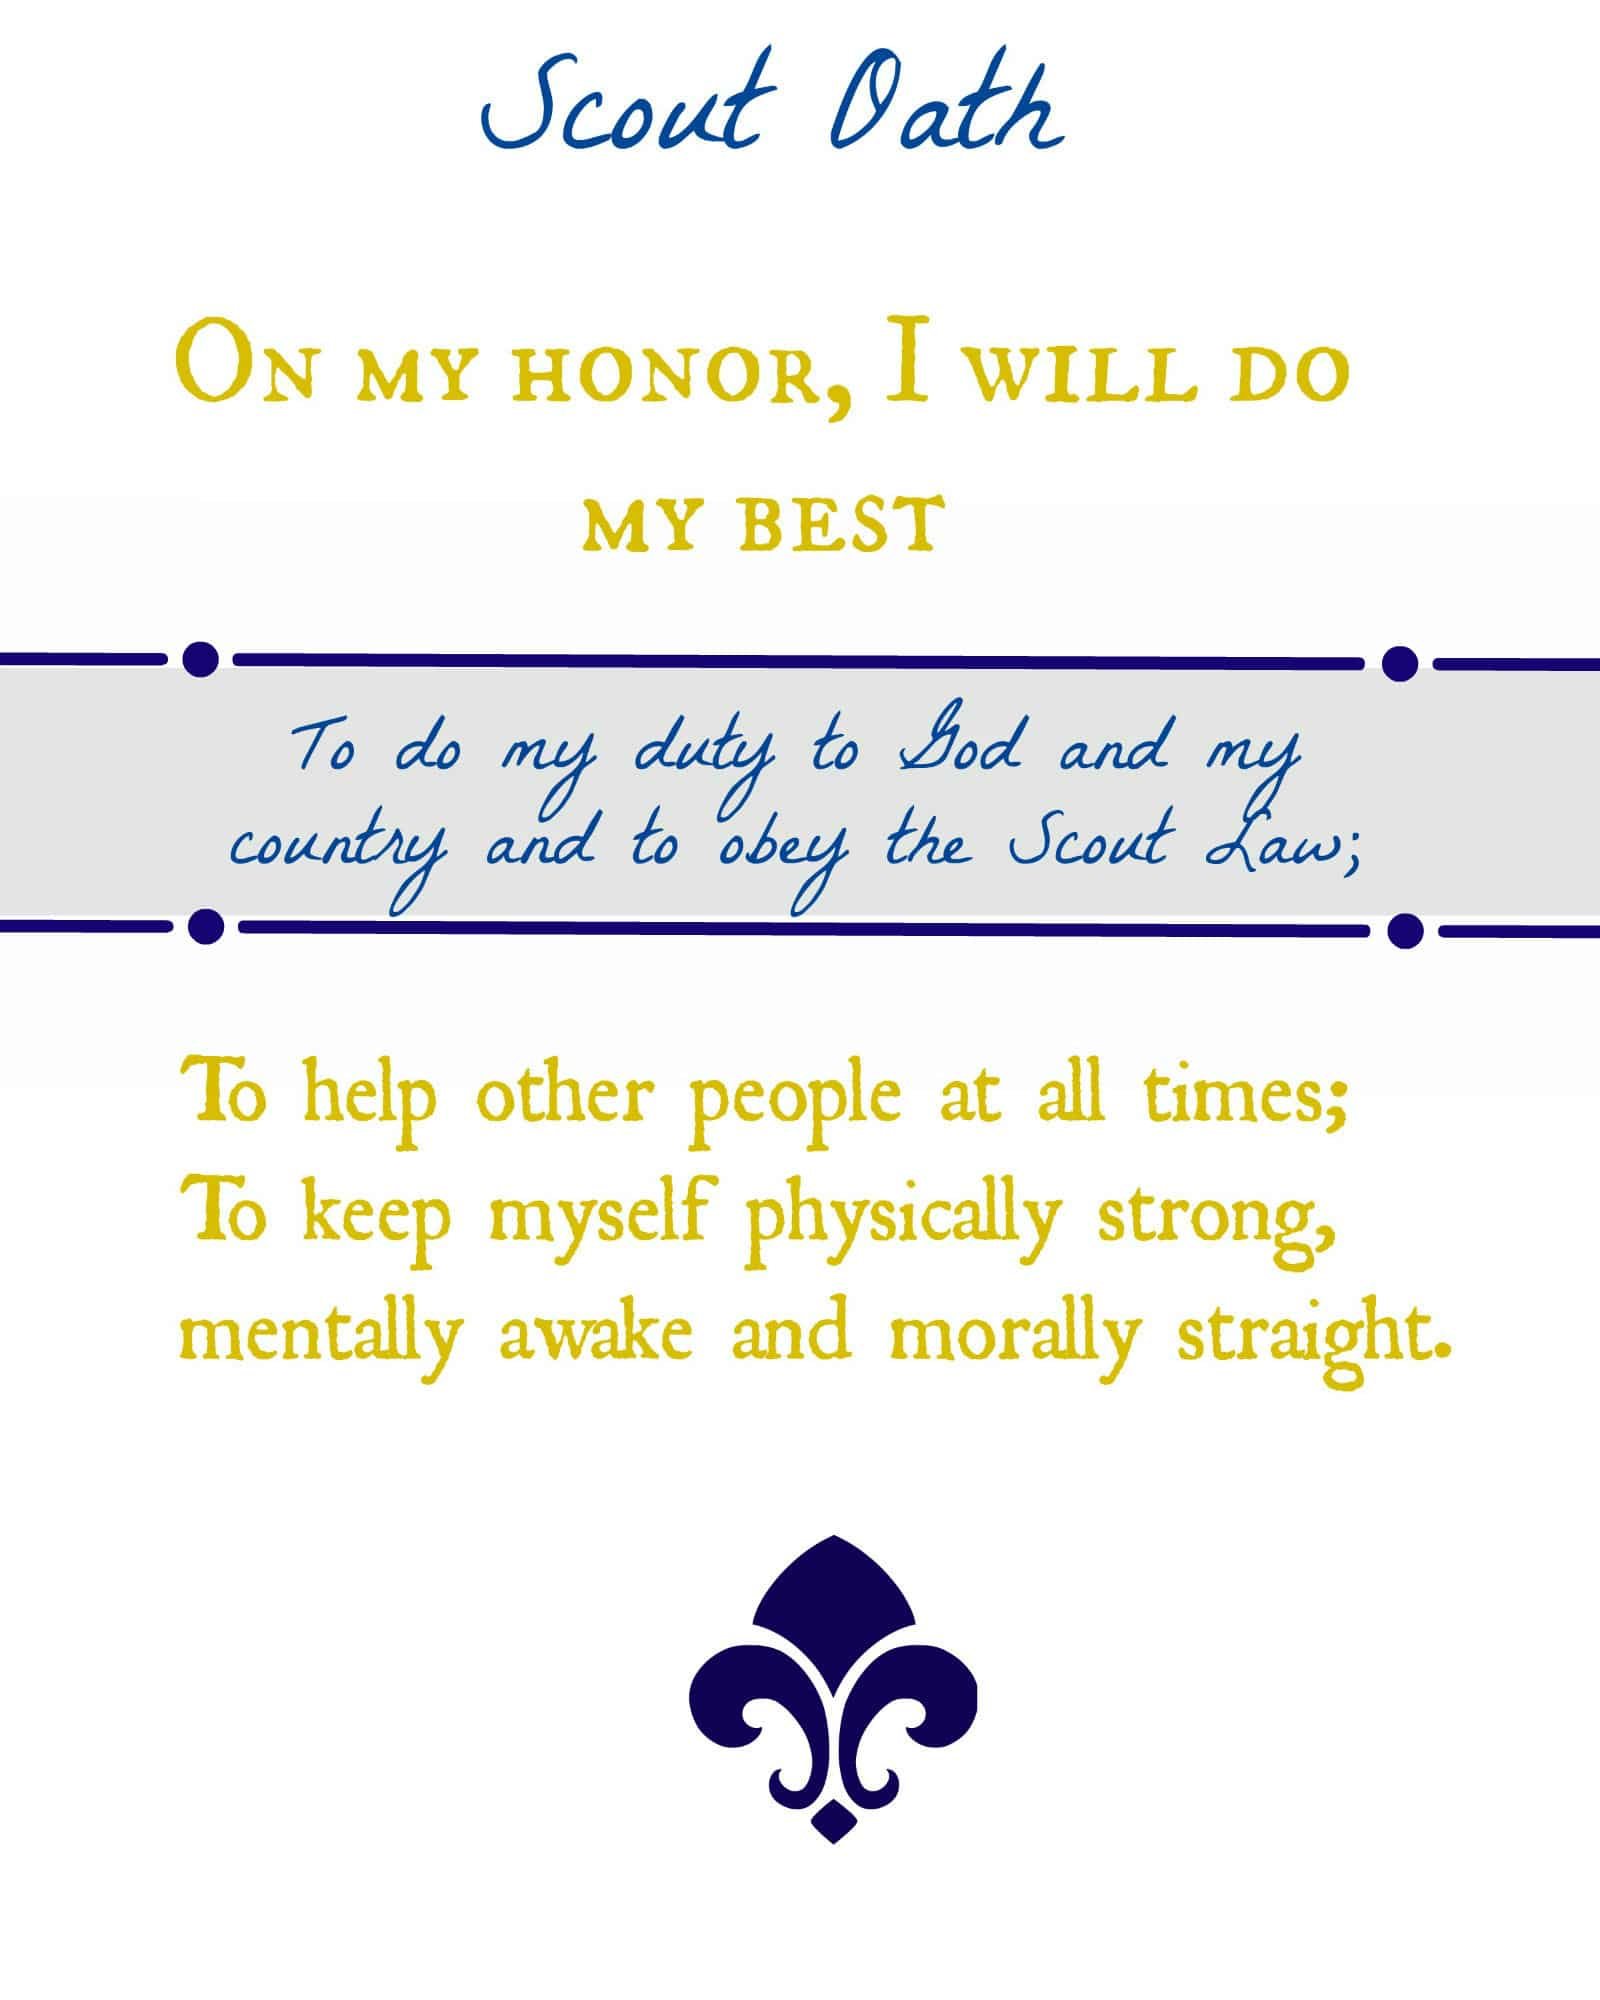 graphic about Scout Oath Printable named Scout Oath and Regulation for Cub Scouts Cub Scout Designs